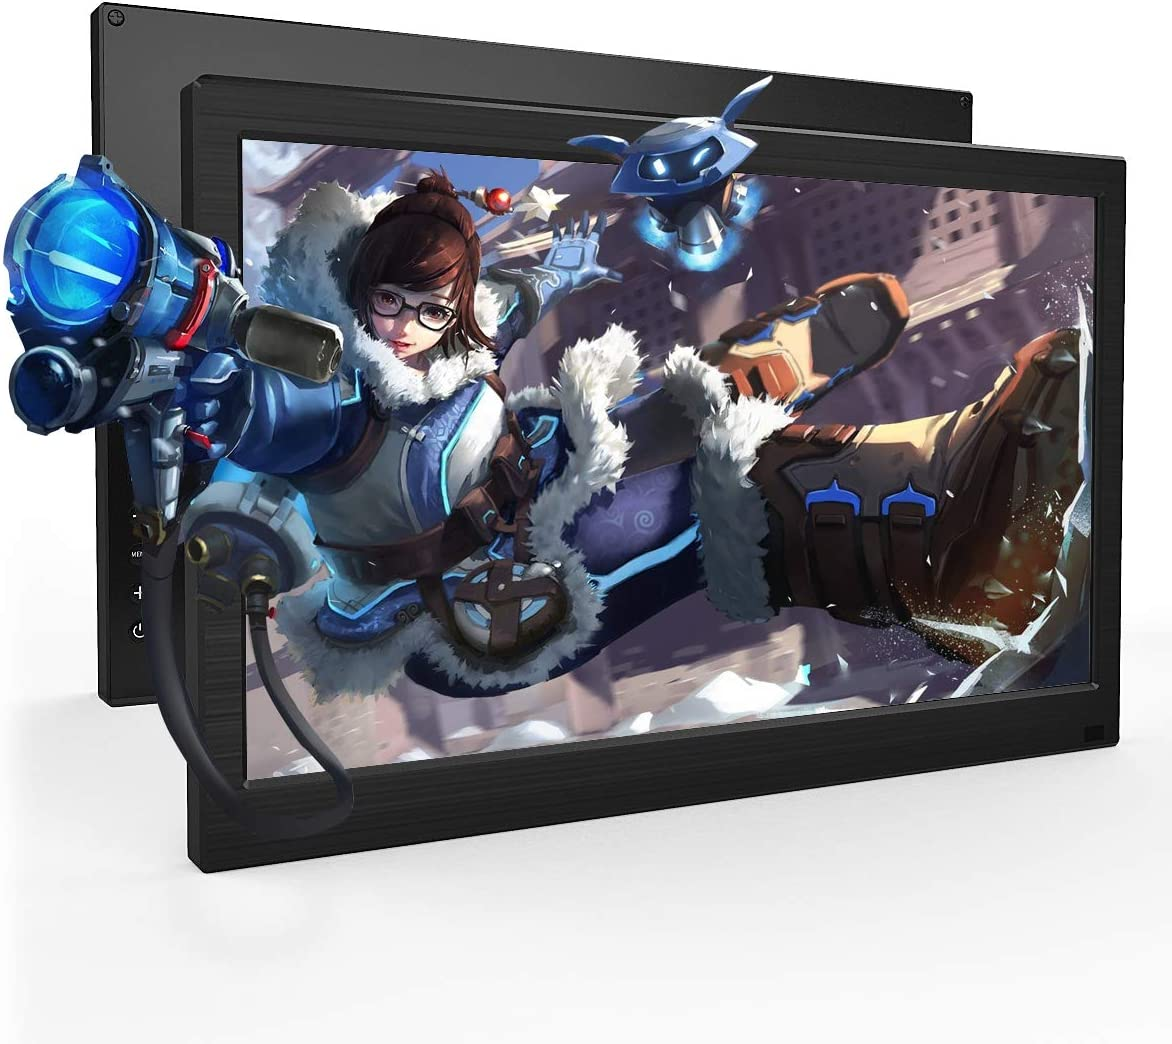 WIFIGDS Monitor 13.3 Inch HD Portable Monitor Display with 1366x768 Resolution Travel Monitor Screen for Laptop PC PS4 Xbox, VGA HDMI Audio Input, VESA Supported